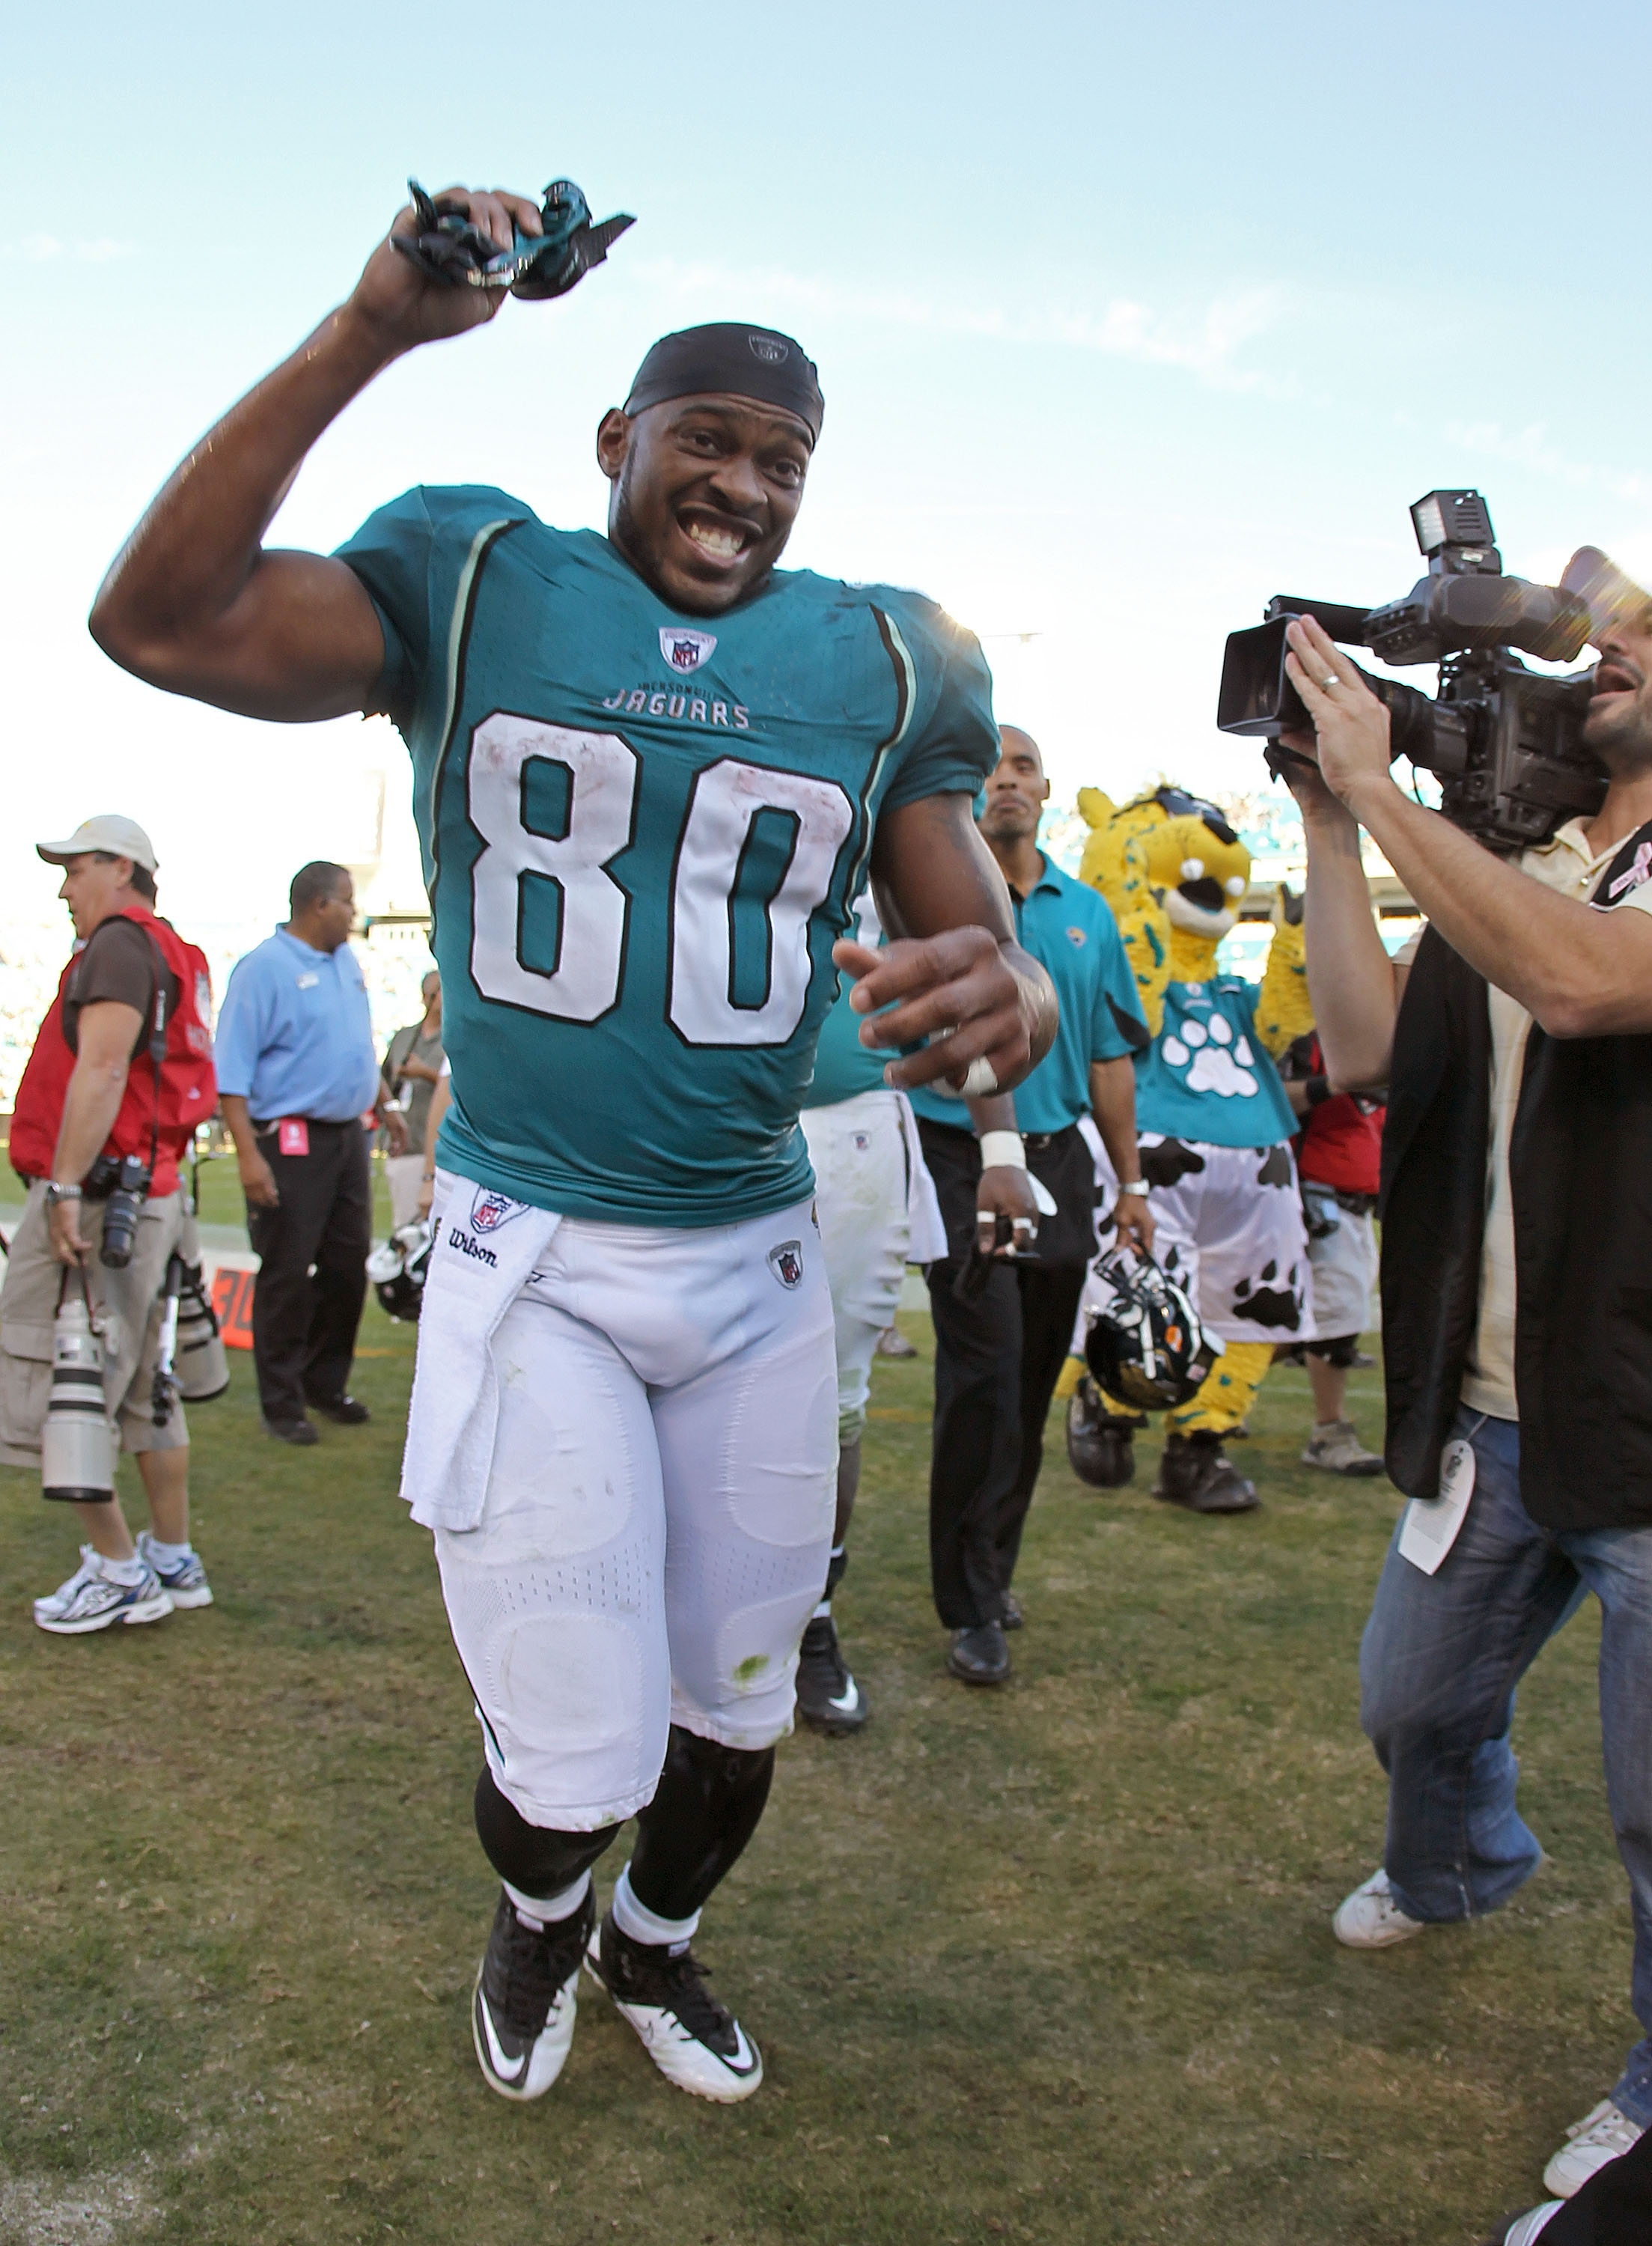 JACKSONVILLE, FL - NOVEMBER 14: Mike Thomas #80 of the Jacksonville Jaguars walks off the field after winning a game against the Houston Texans at EverBank Field on November 14, 2010 in Jacksonville, Florida.  (Photo by Mike Ehrmann/Getty Images)